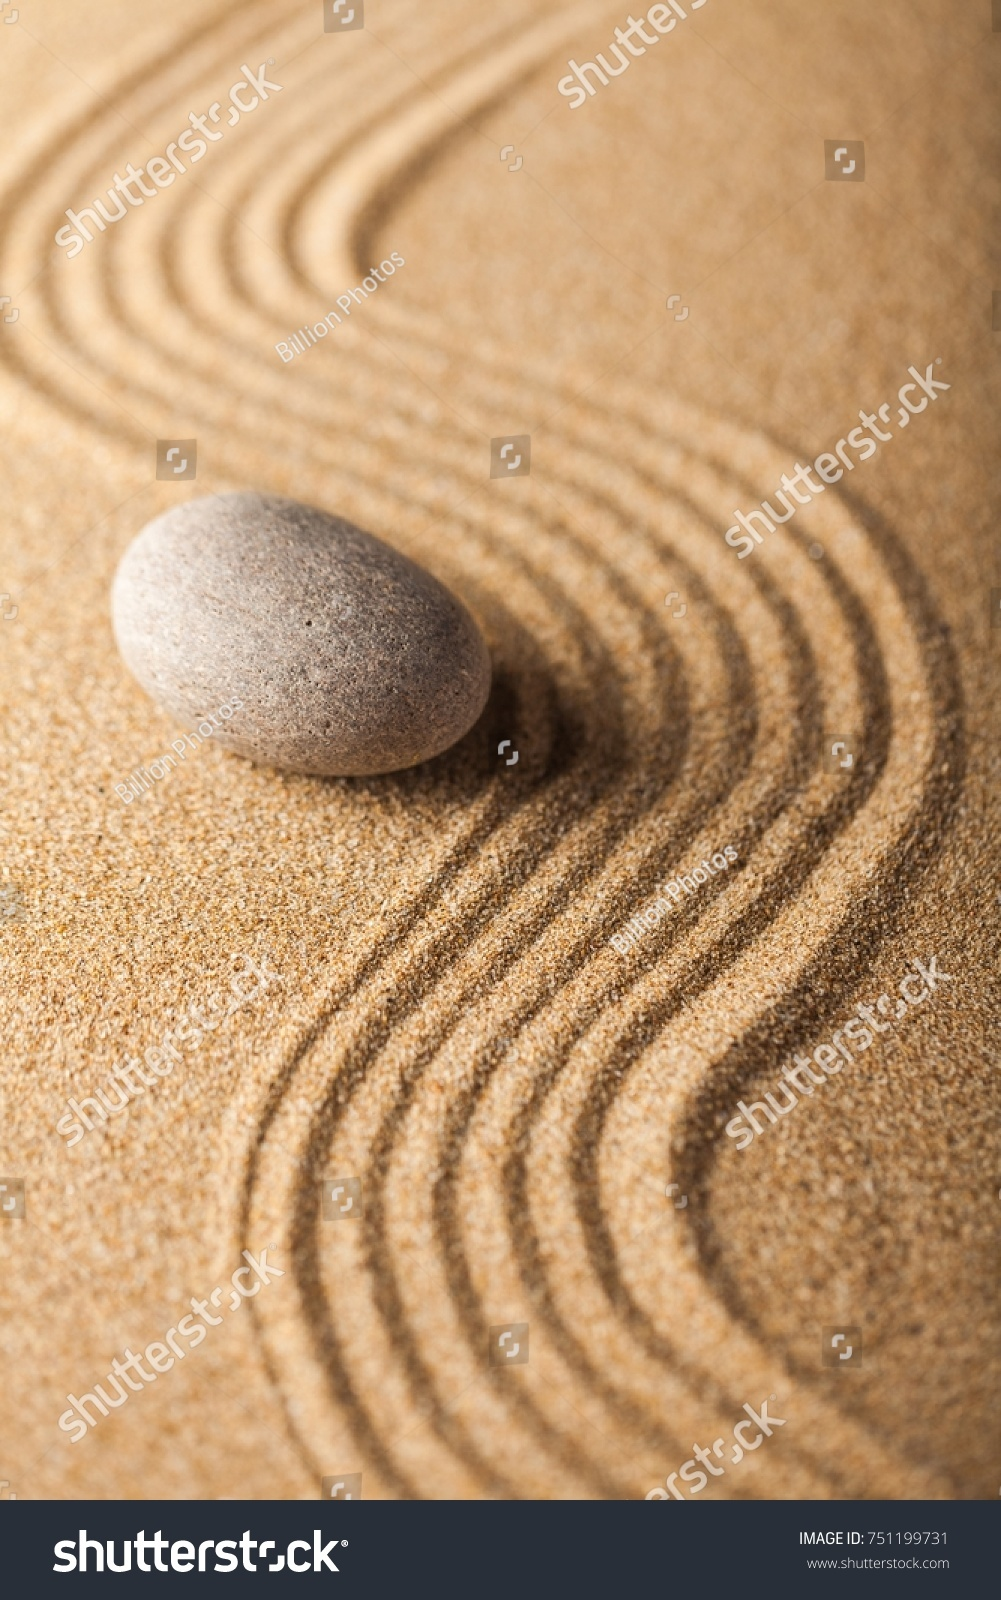 Zen Garden Raked Sand Smooth Stone Stock Photo (Download Now ...